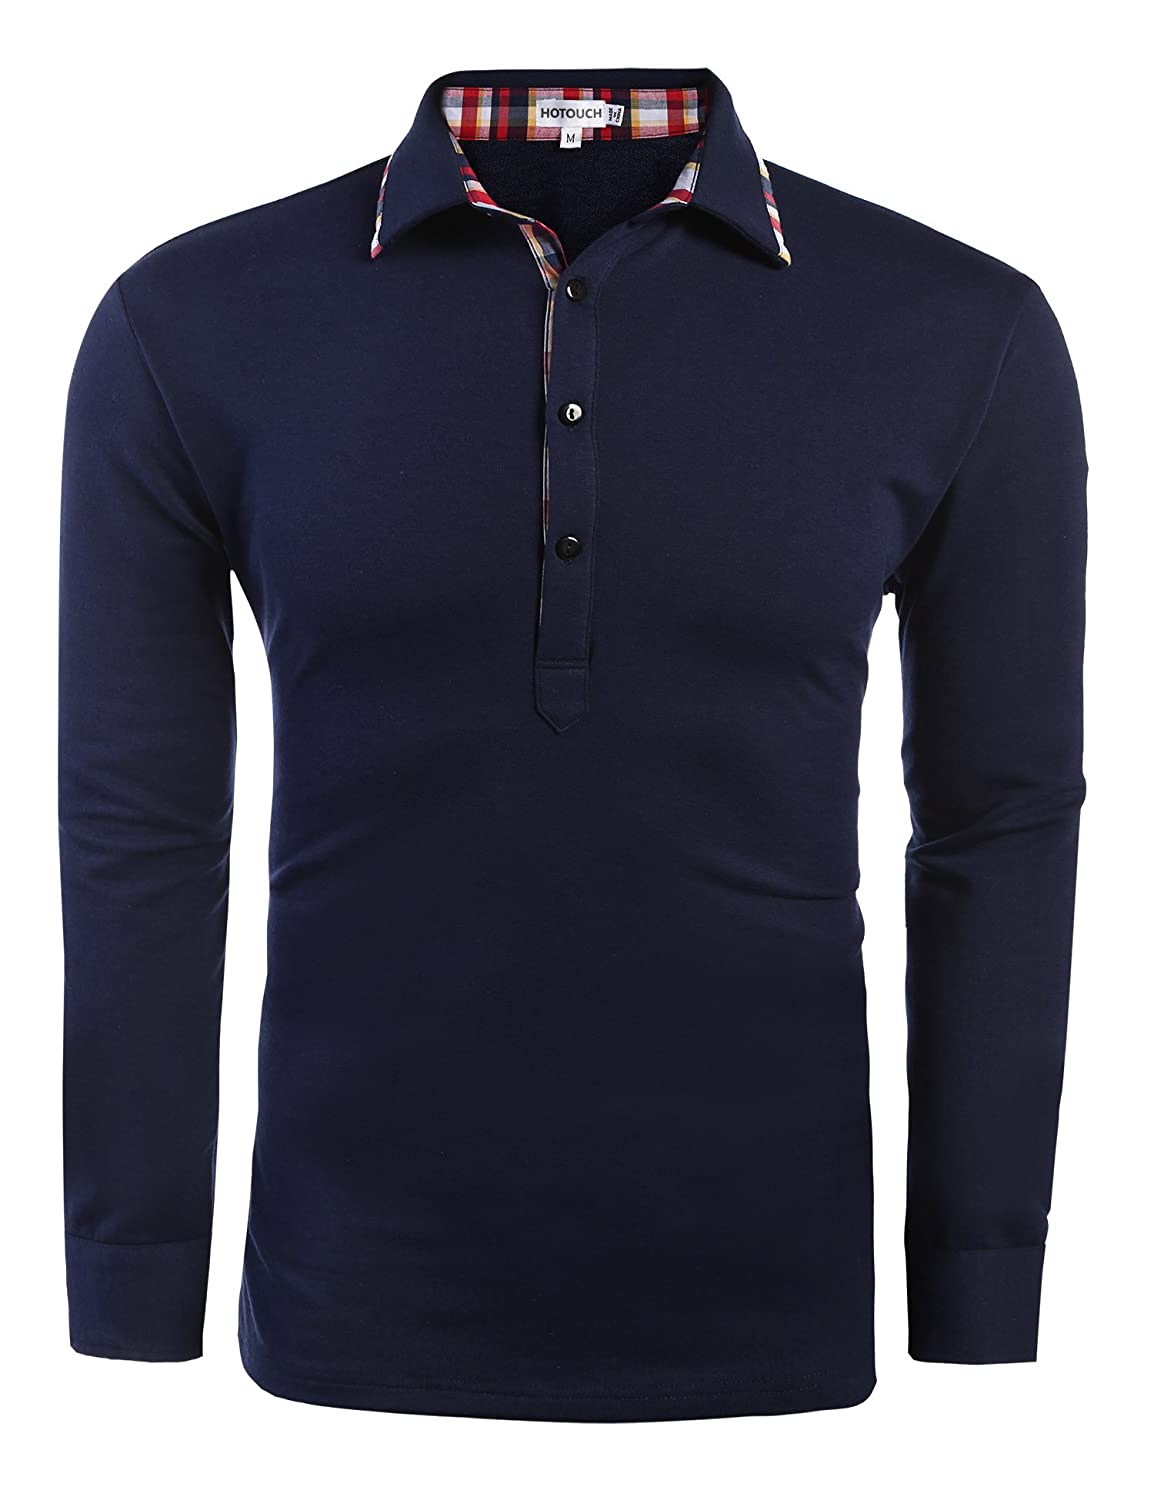 Hotouch Mens Casual Solid Check Placket Long Sleeve Polo Shirt AMJ005095